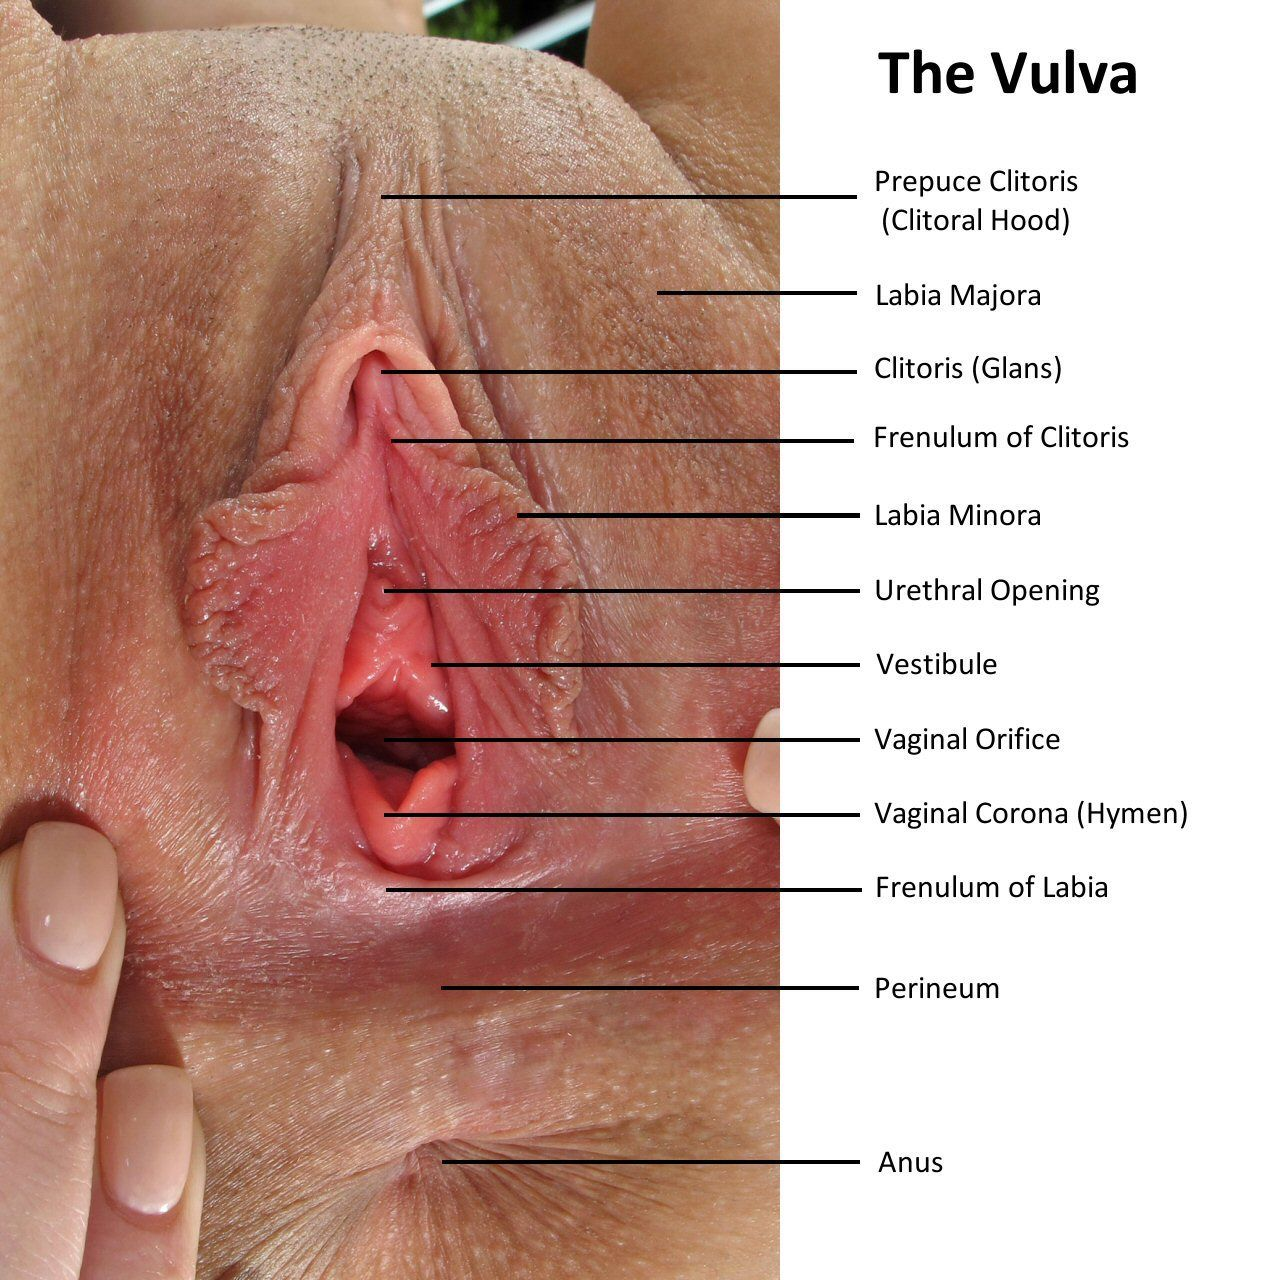 Vulva Anatomy The vulva are the external female genitals that ...